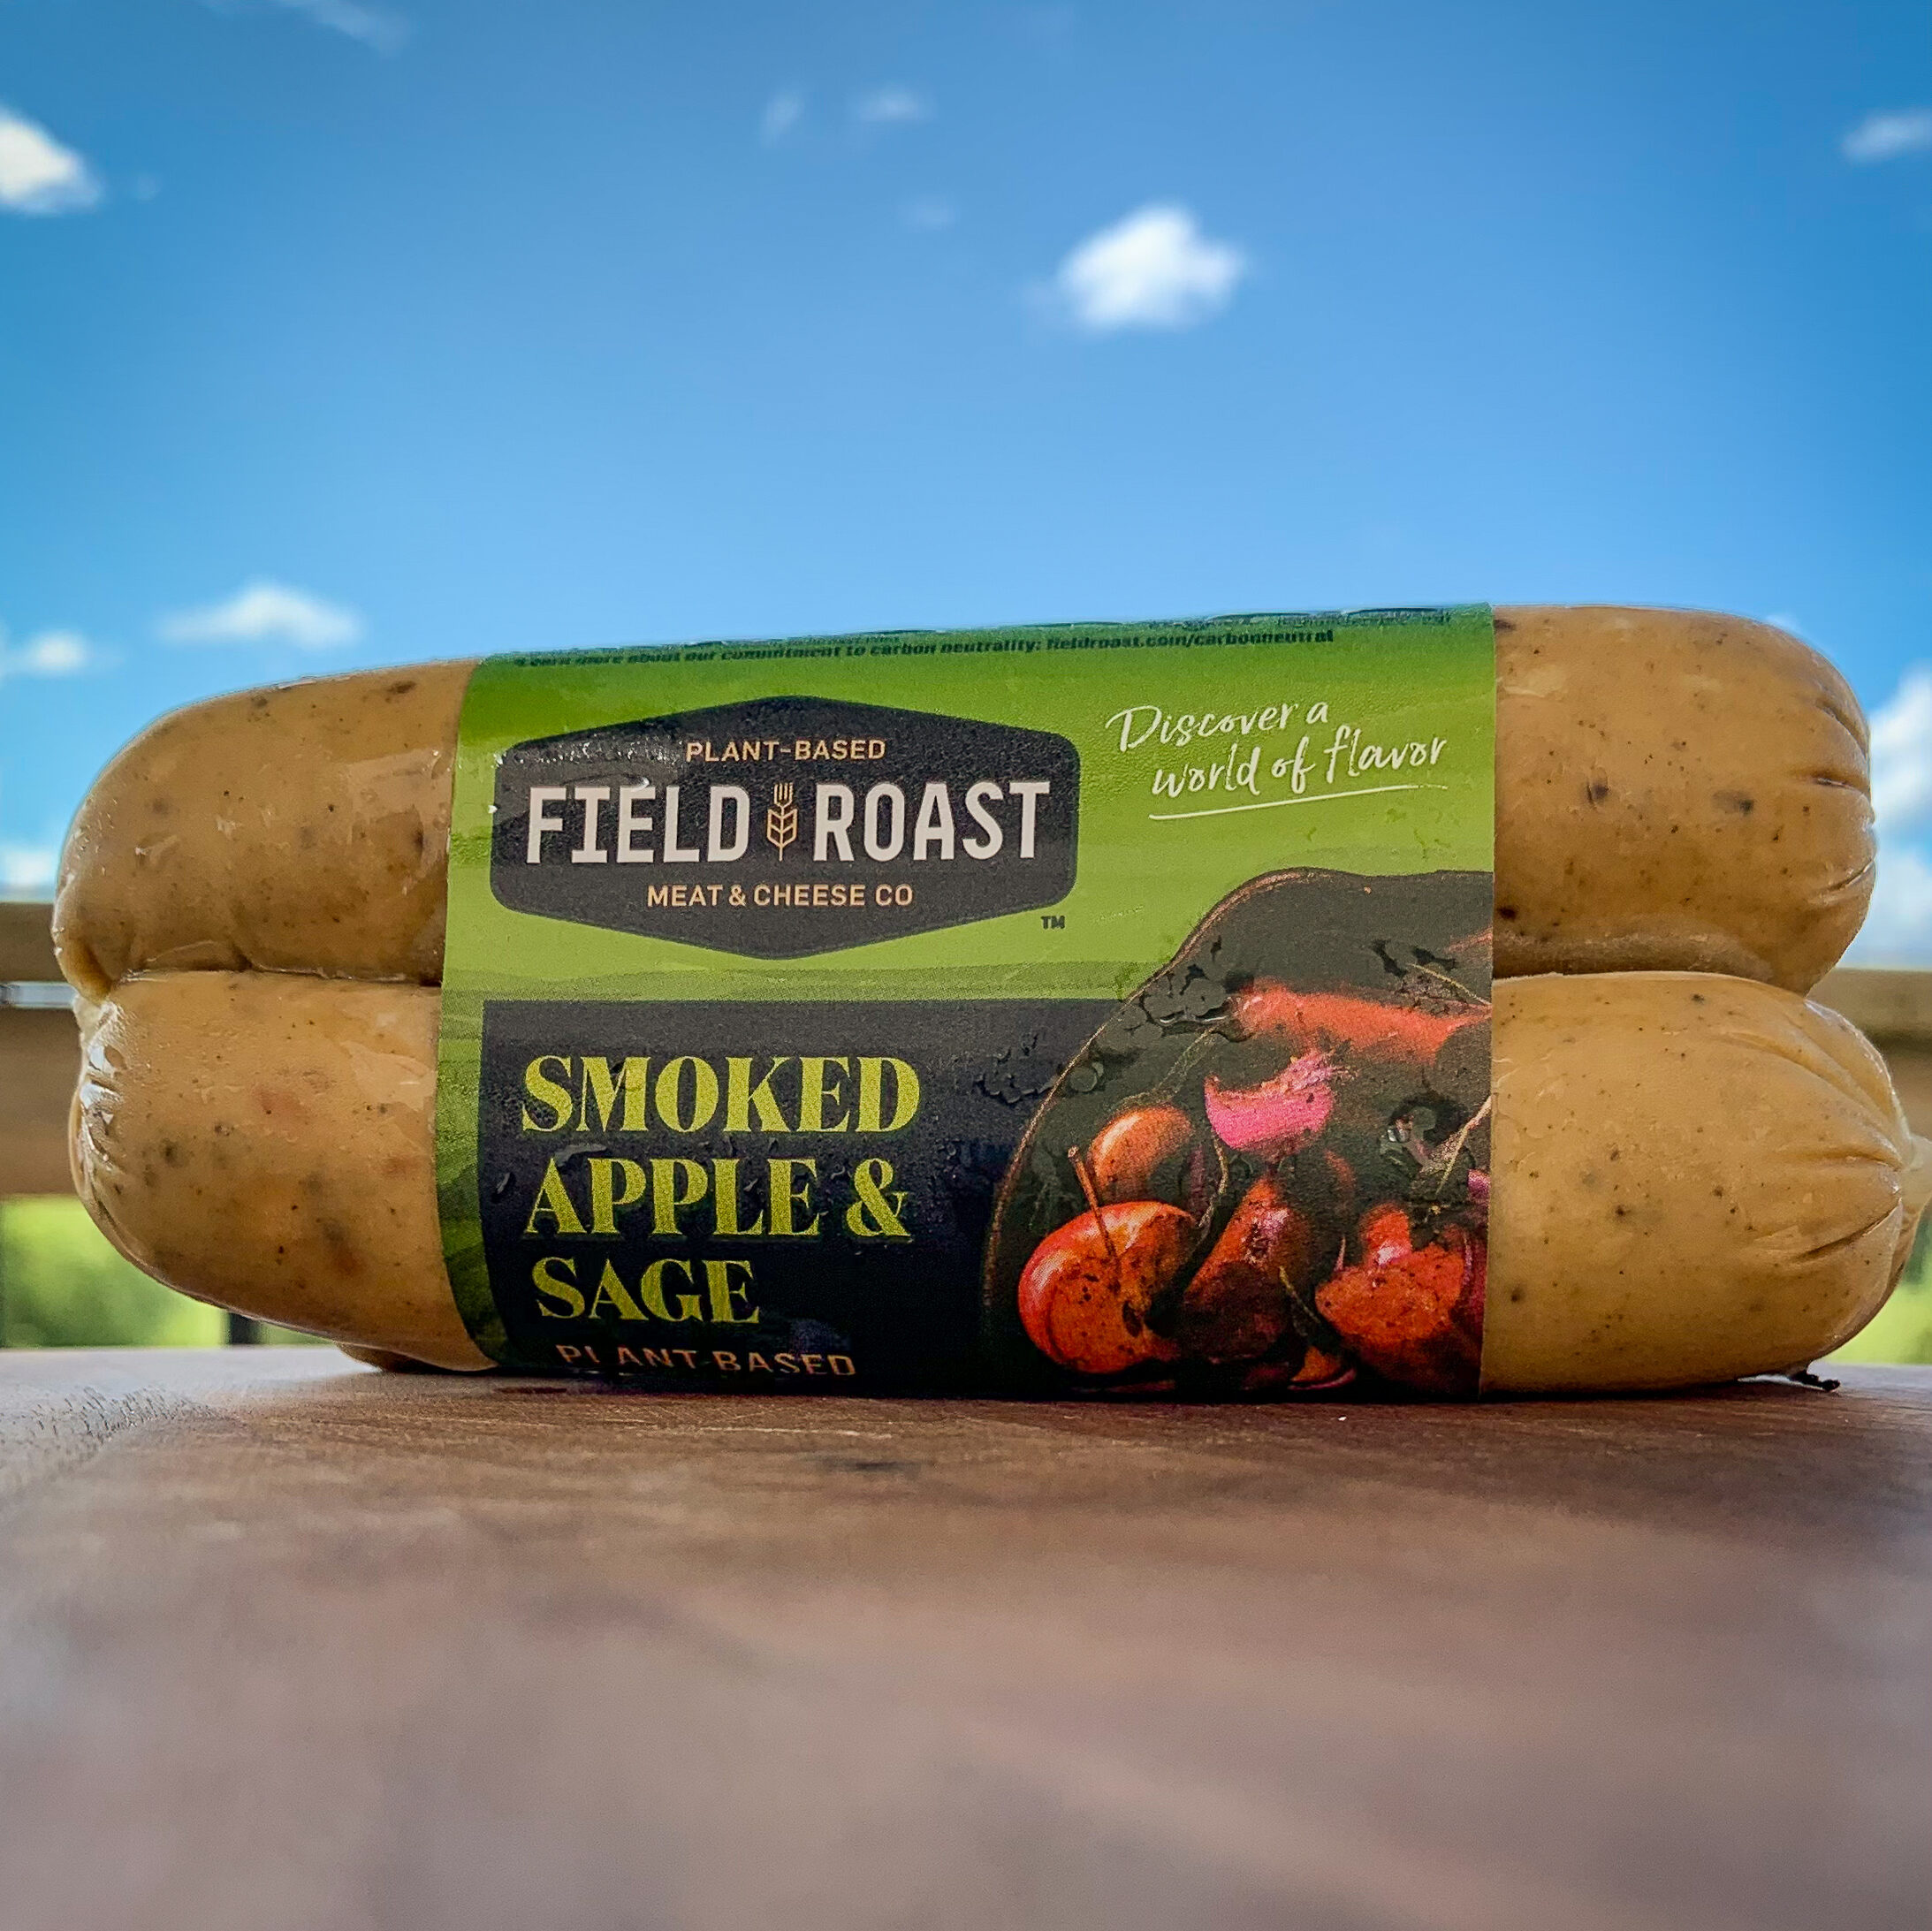 A close up image of a package of Field Roast Smoked apple and sage sausage.